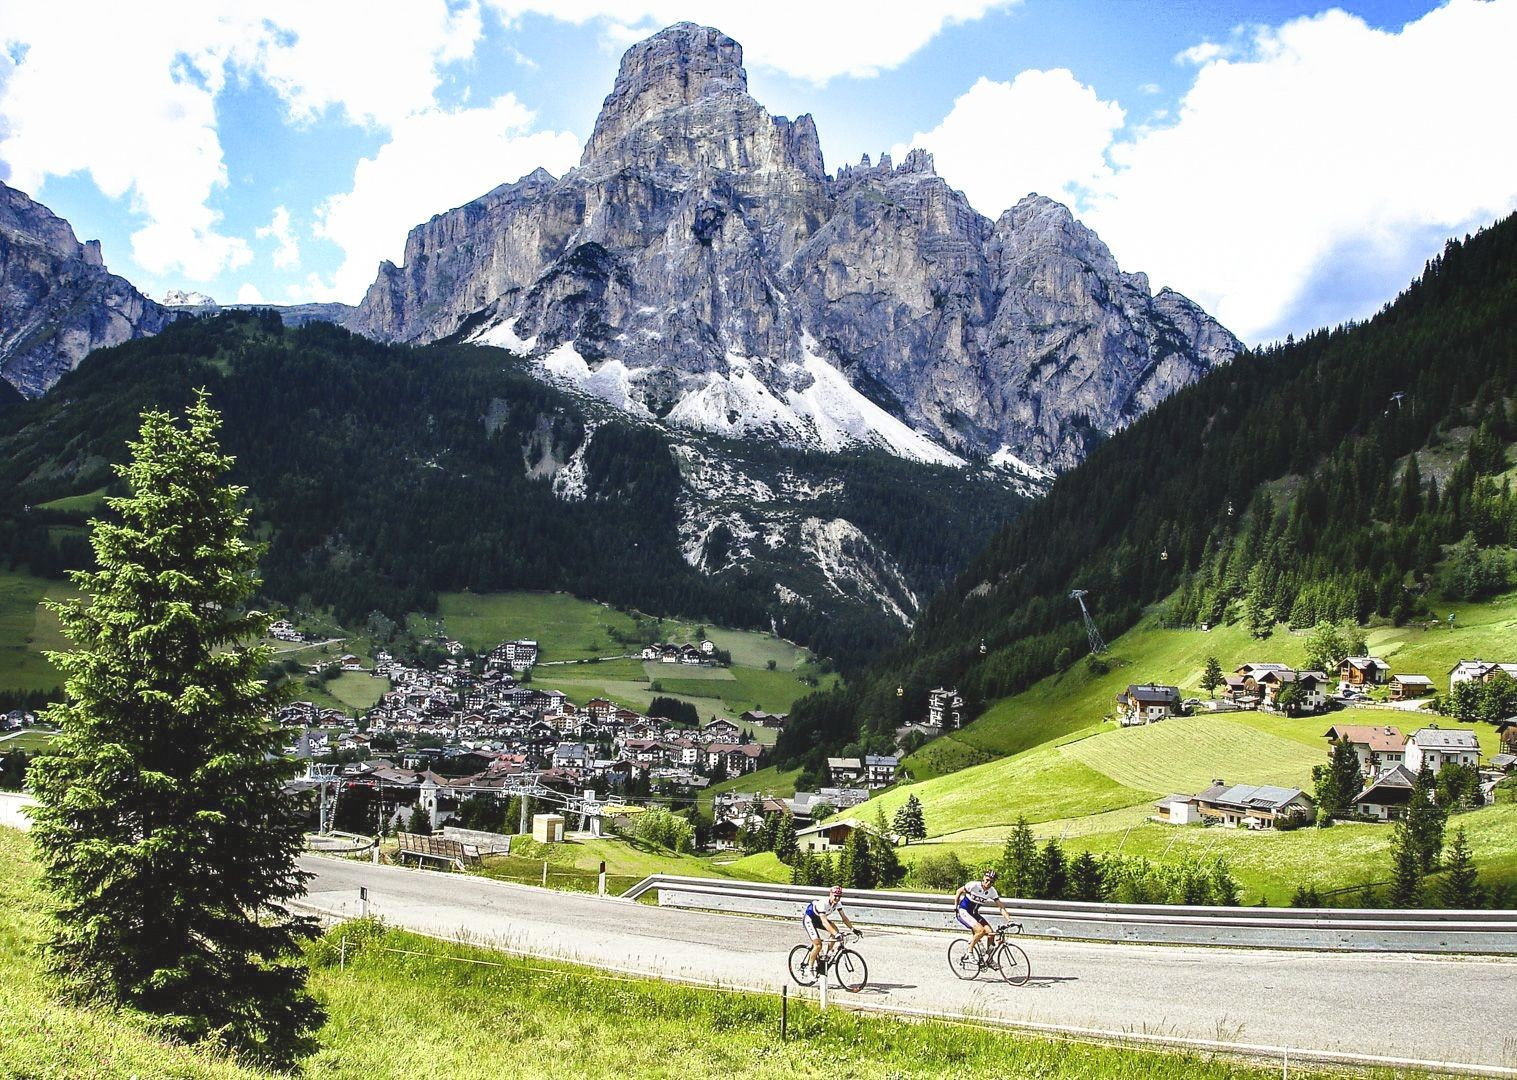 mountain-dolomites-of-italy-by-road-bike.jpg - Italy - Alps and Dolomites - Giants of the Giro - Guided Road Cycling Holiday - Italia Road Cycling